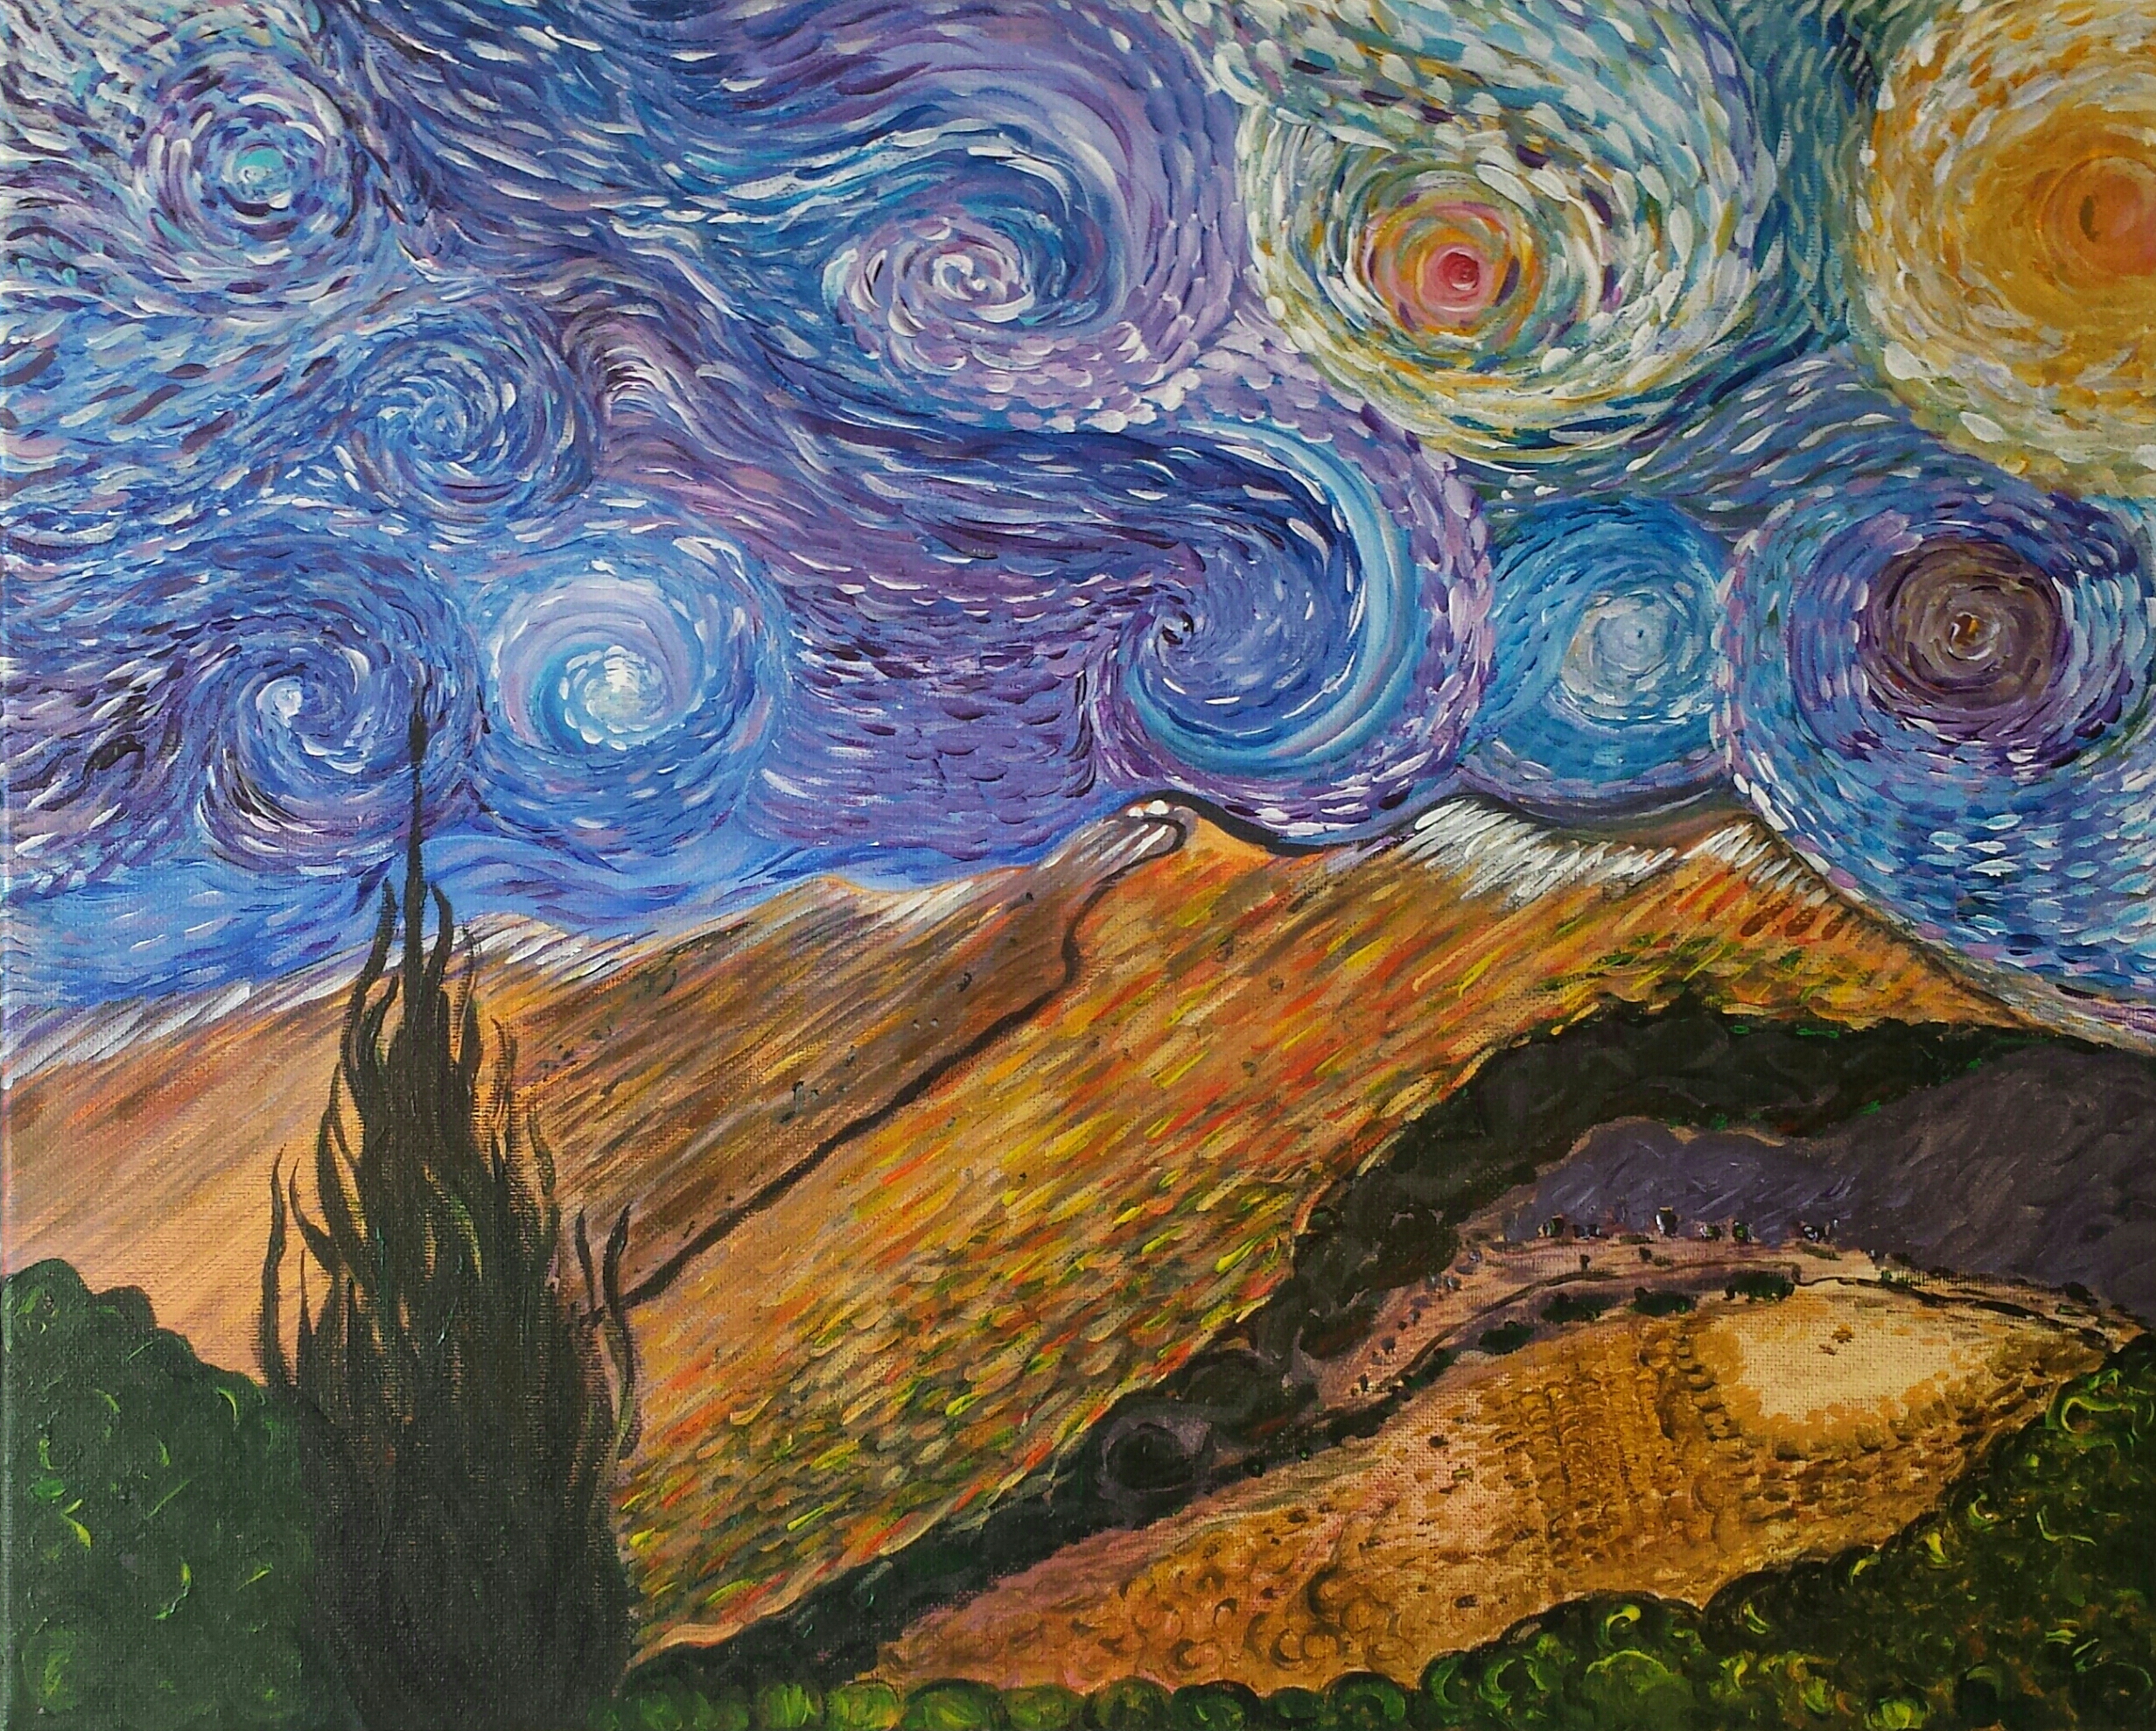 Orion: In the Spirit of Gogh